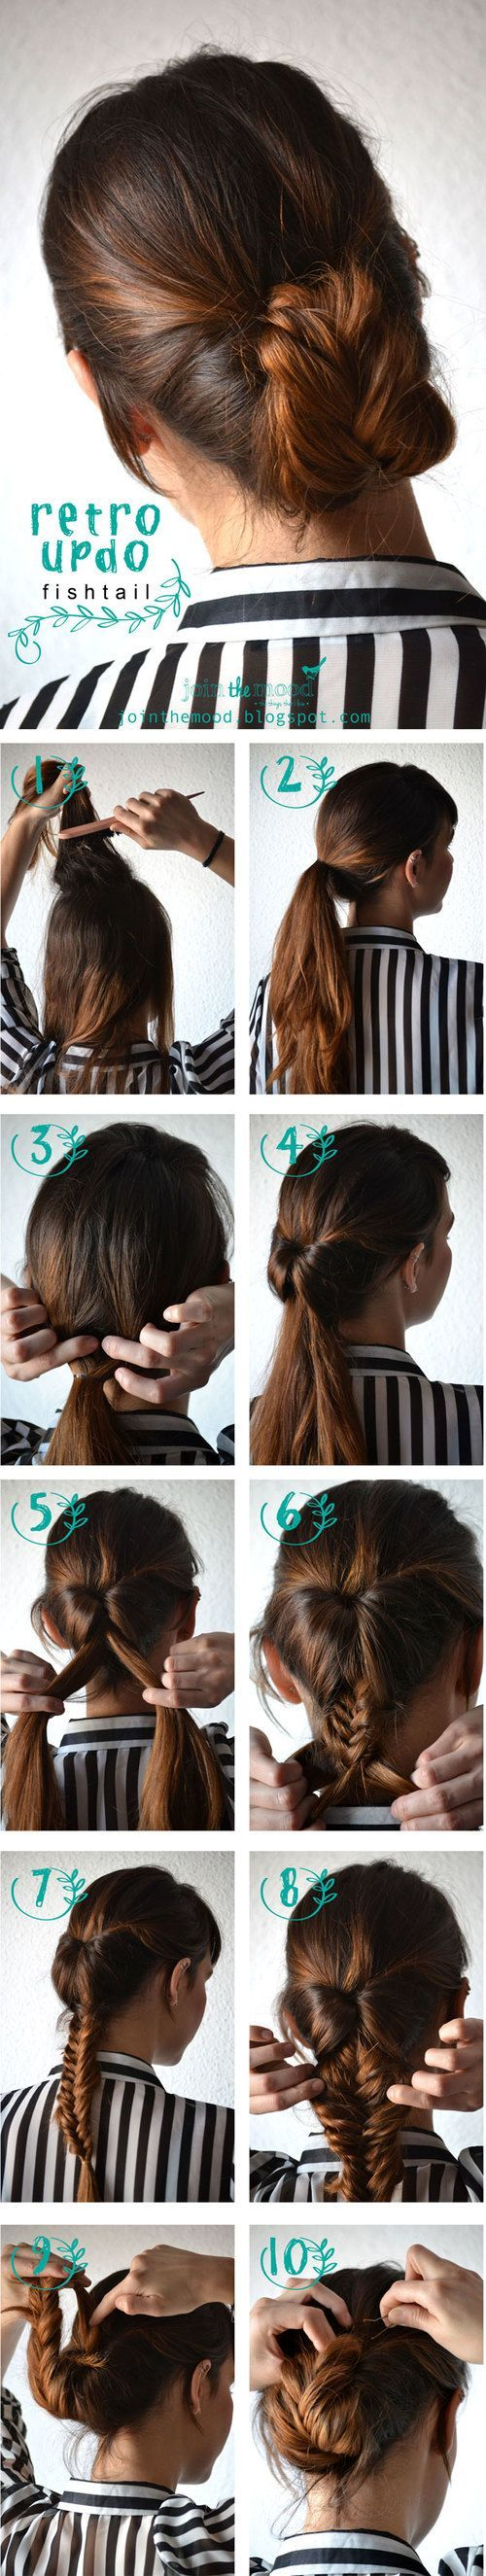 Retro Updo Fishtail Hair Style – Step by Step Hair Tutorial